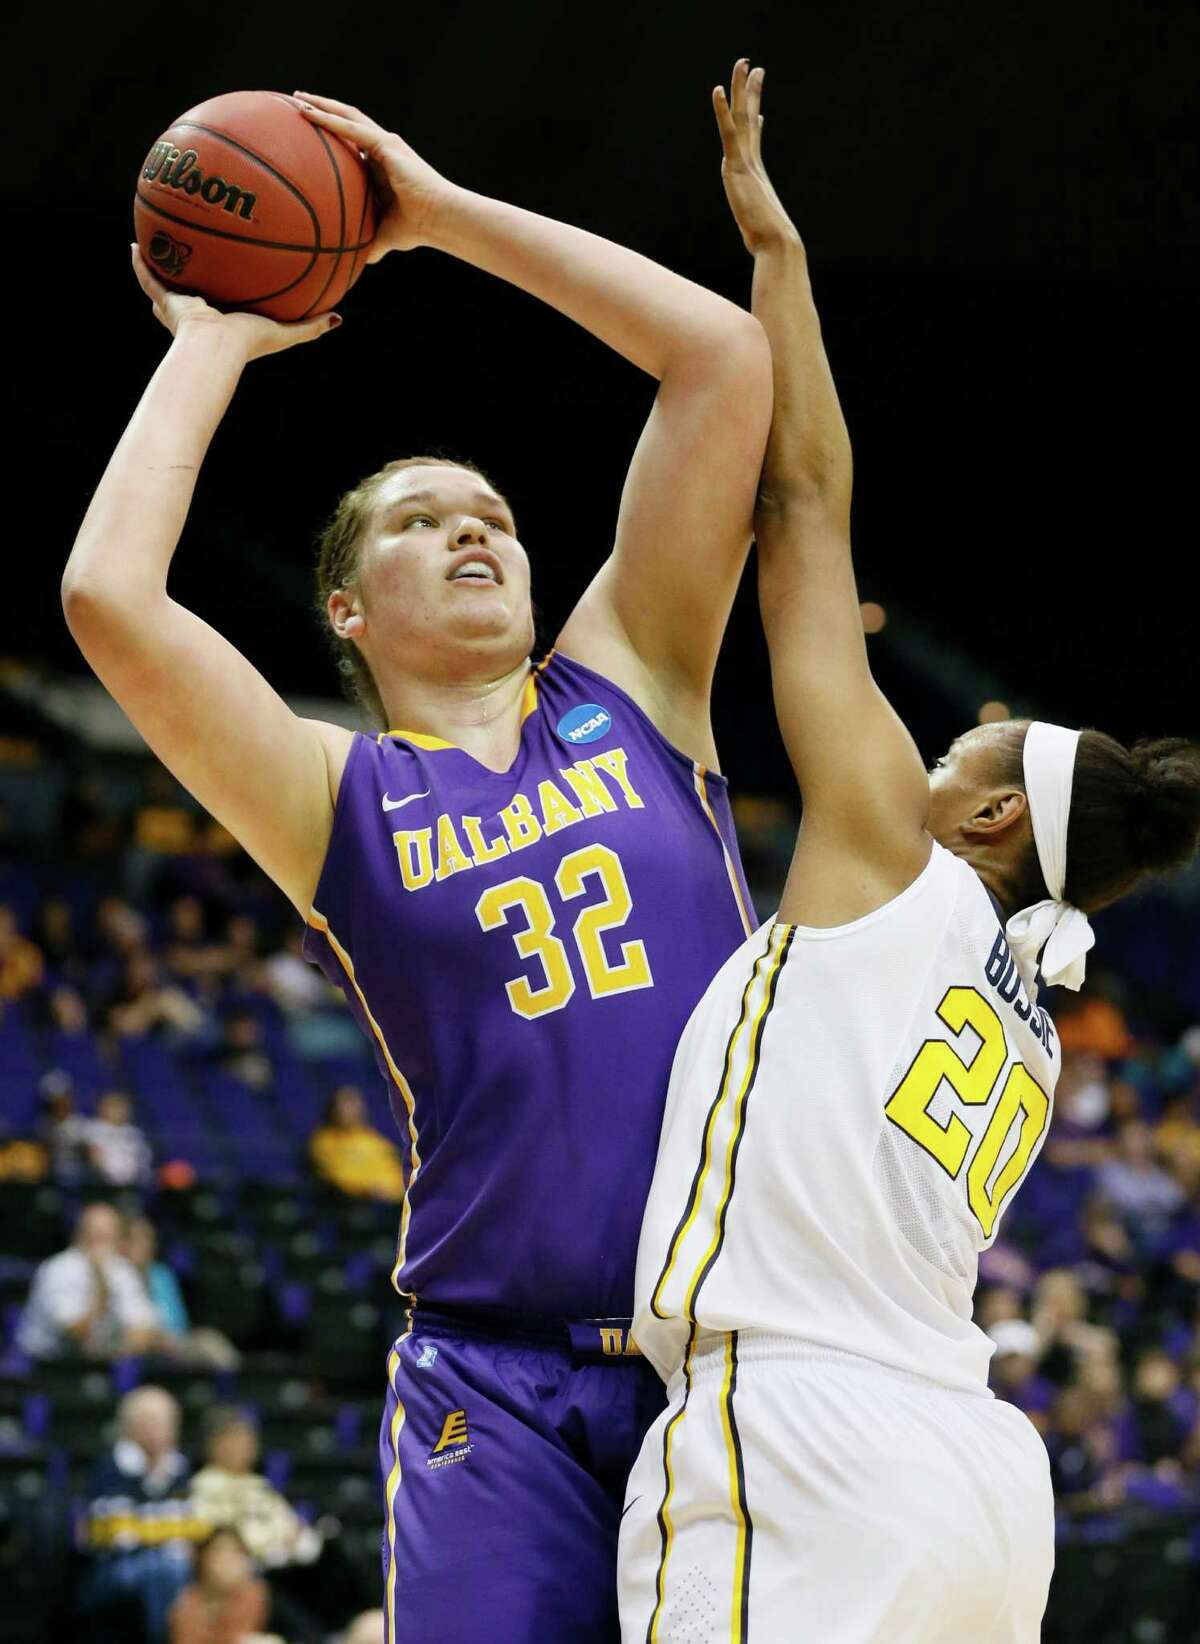 Albany center Megan Craig (32) attempts a shot at the basket while West Virginia center Asya Bussie (20) defends in the first half of an NCAA college basketball first-round tournament game on Sunday, March 23, 2014, in Baton Rouge, La. (AP Photo/Rogelio V. Solis) ORG XMIT: LARS114